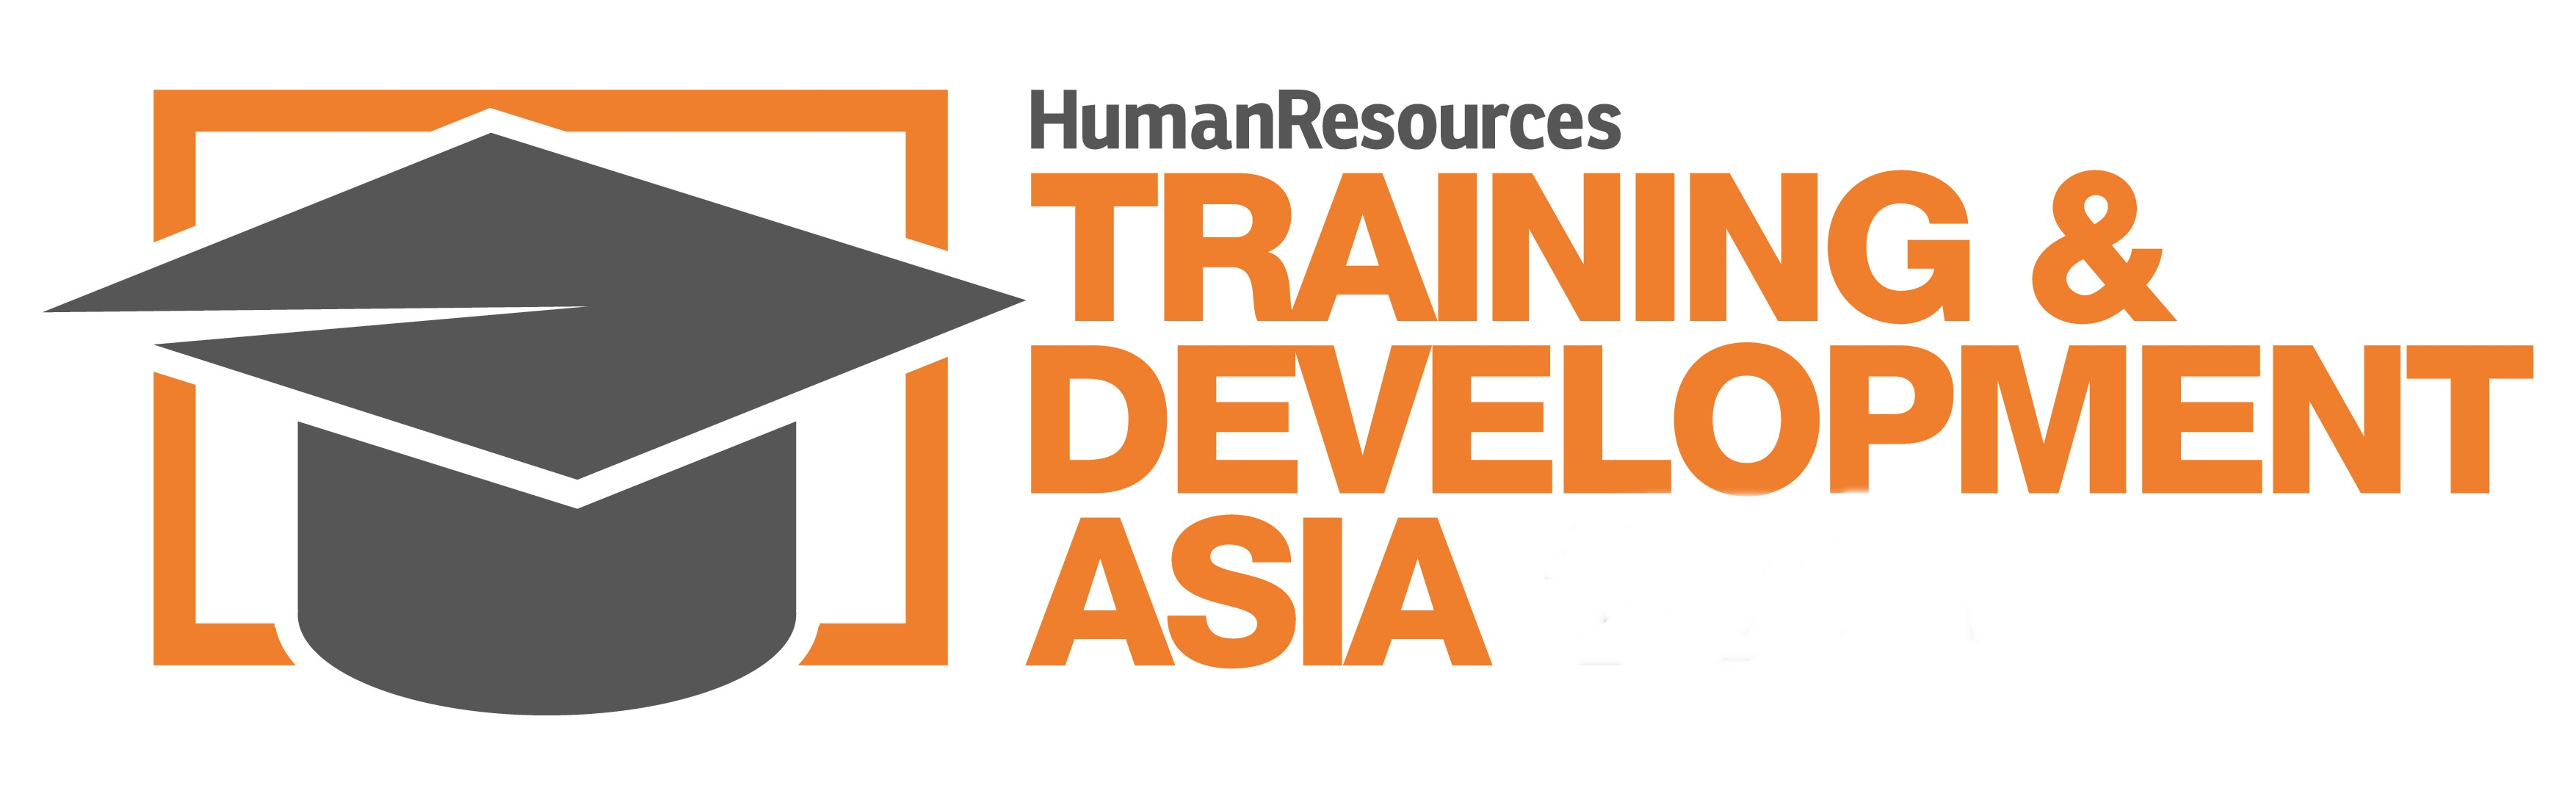 Training Development Asia Logo